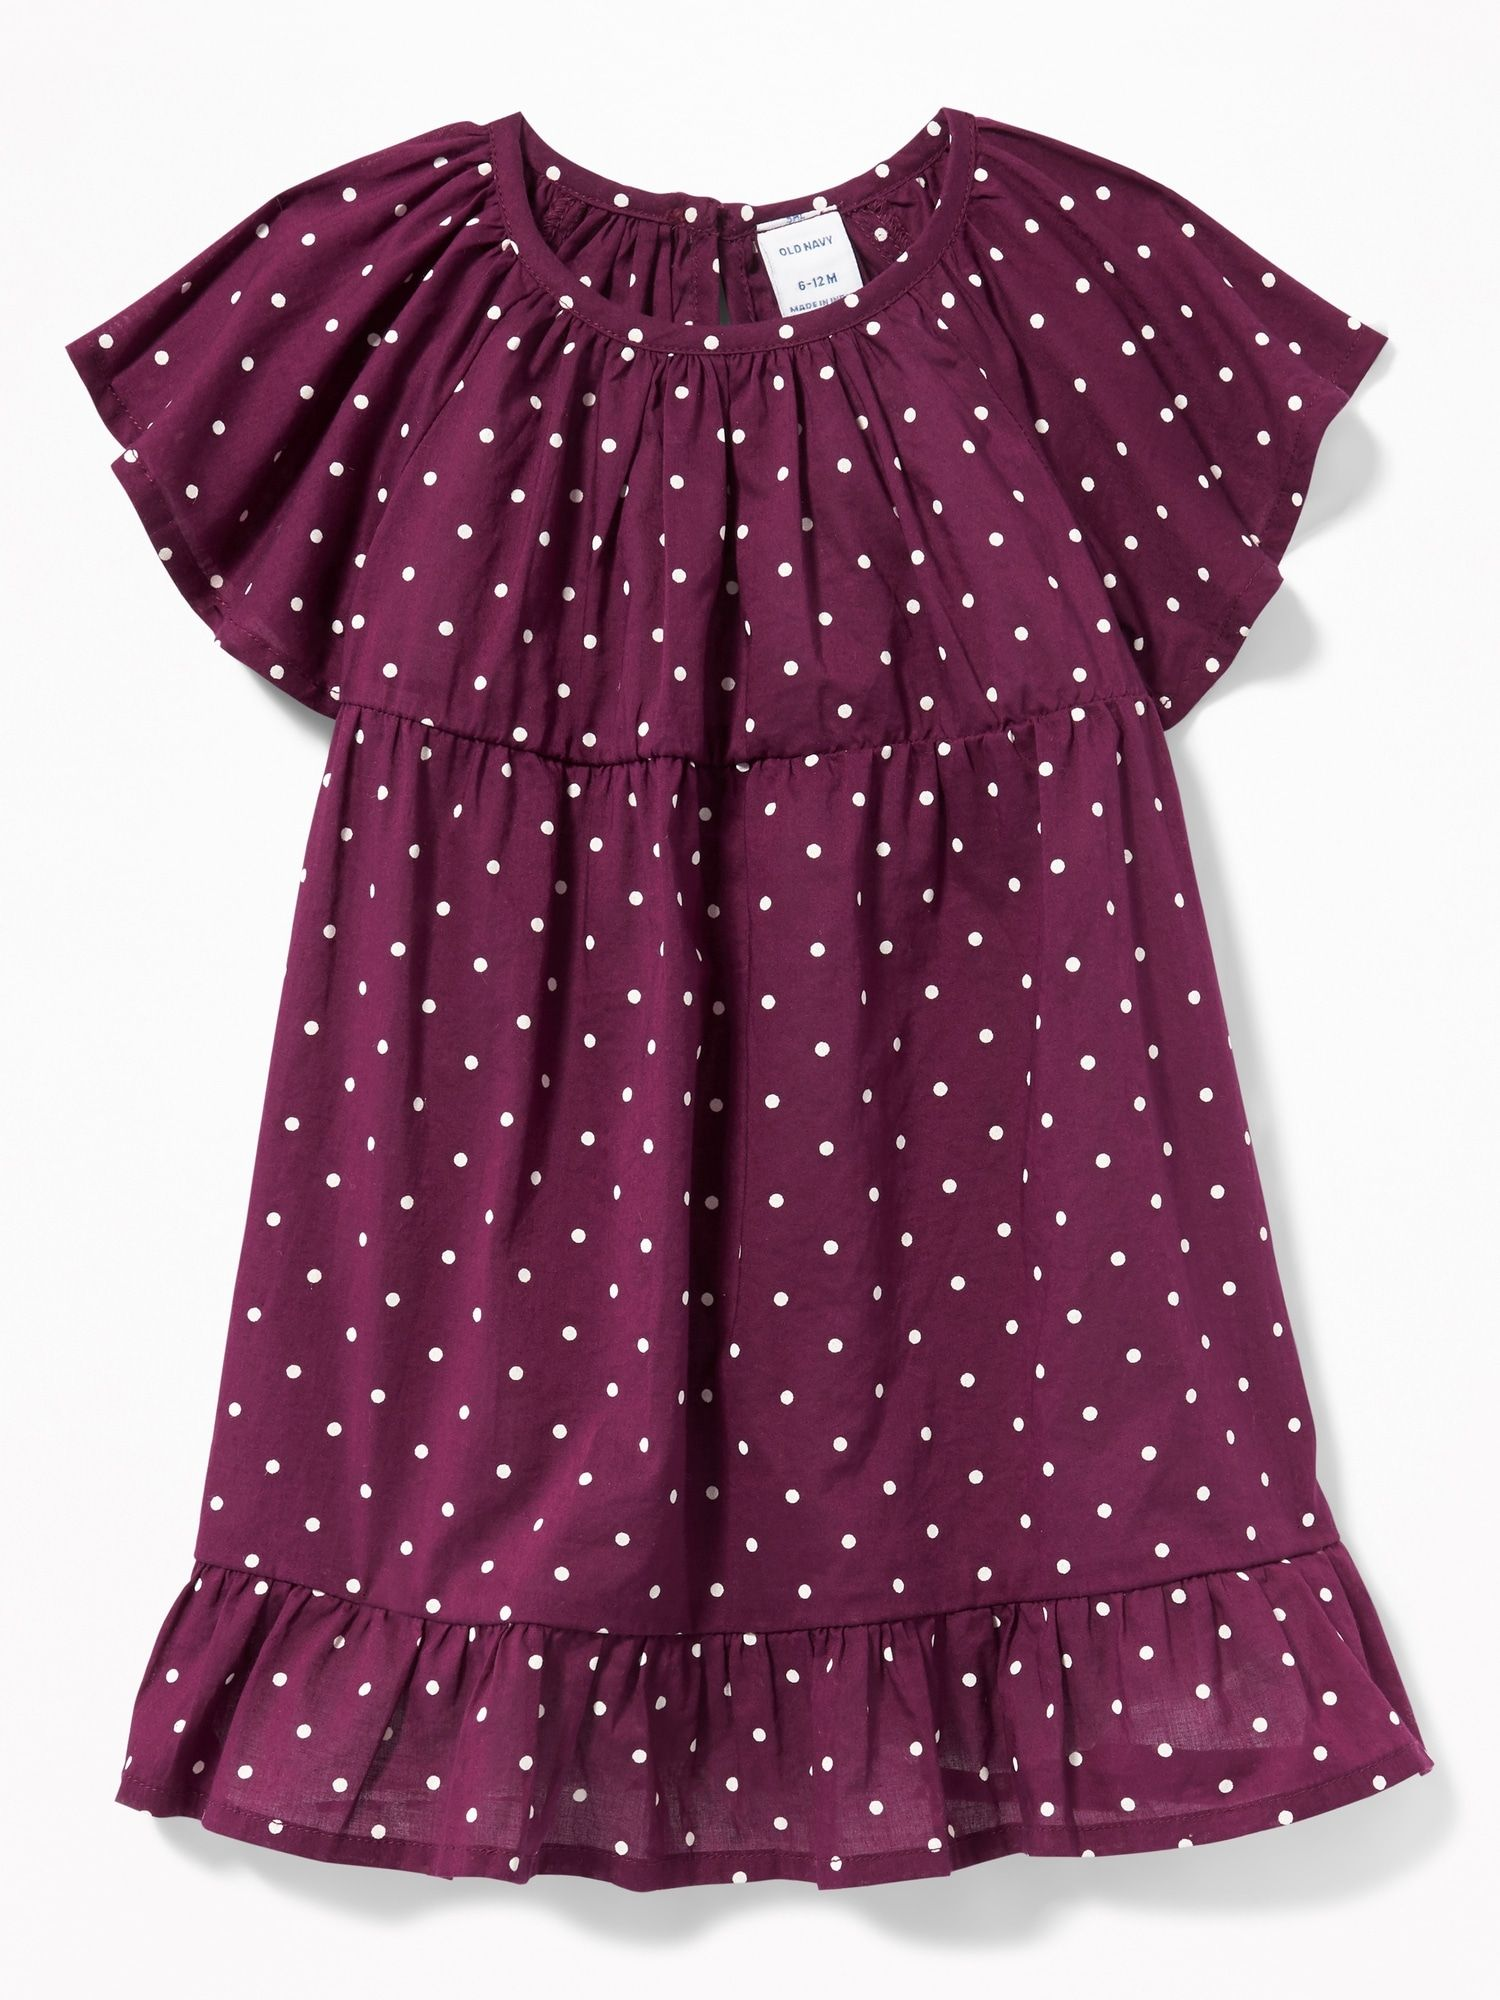 Fluttersleeve babydoll dress for baby baby u toddler girl fall